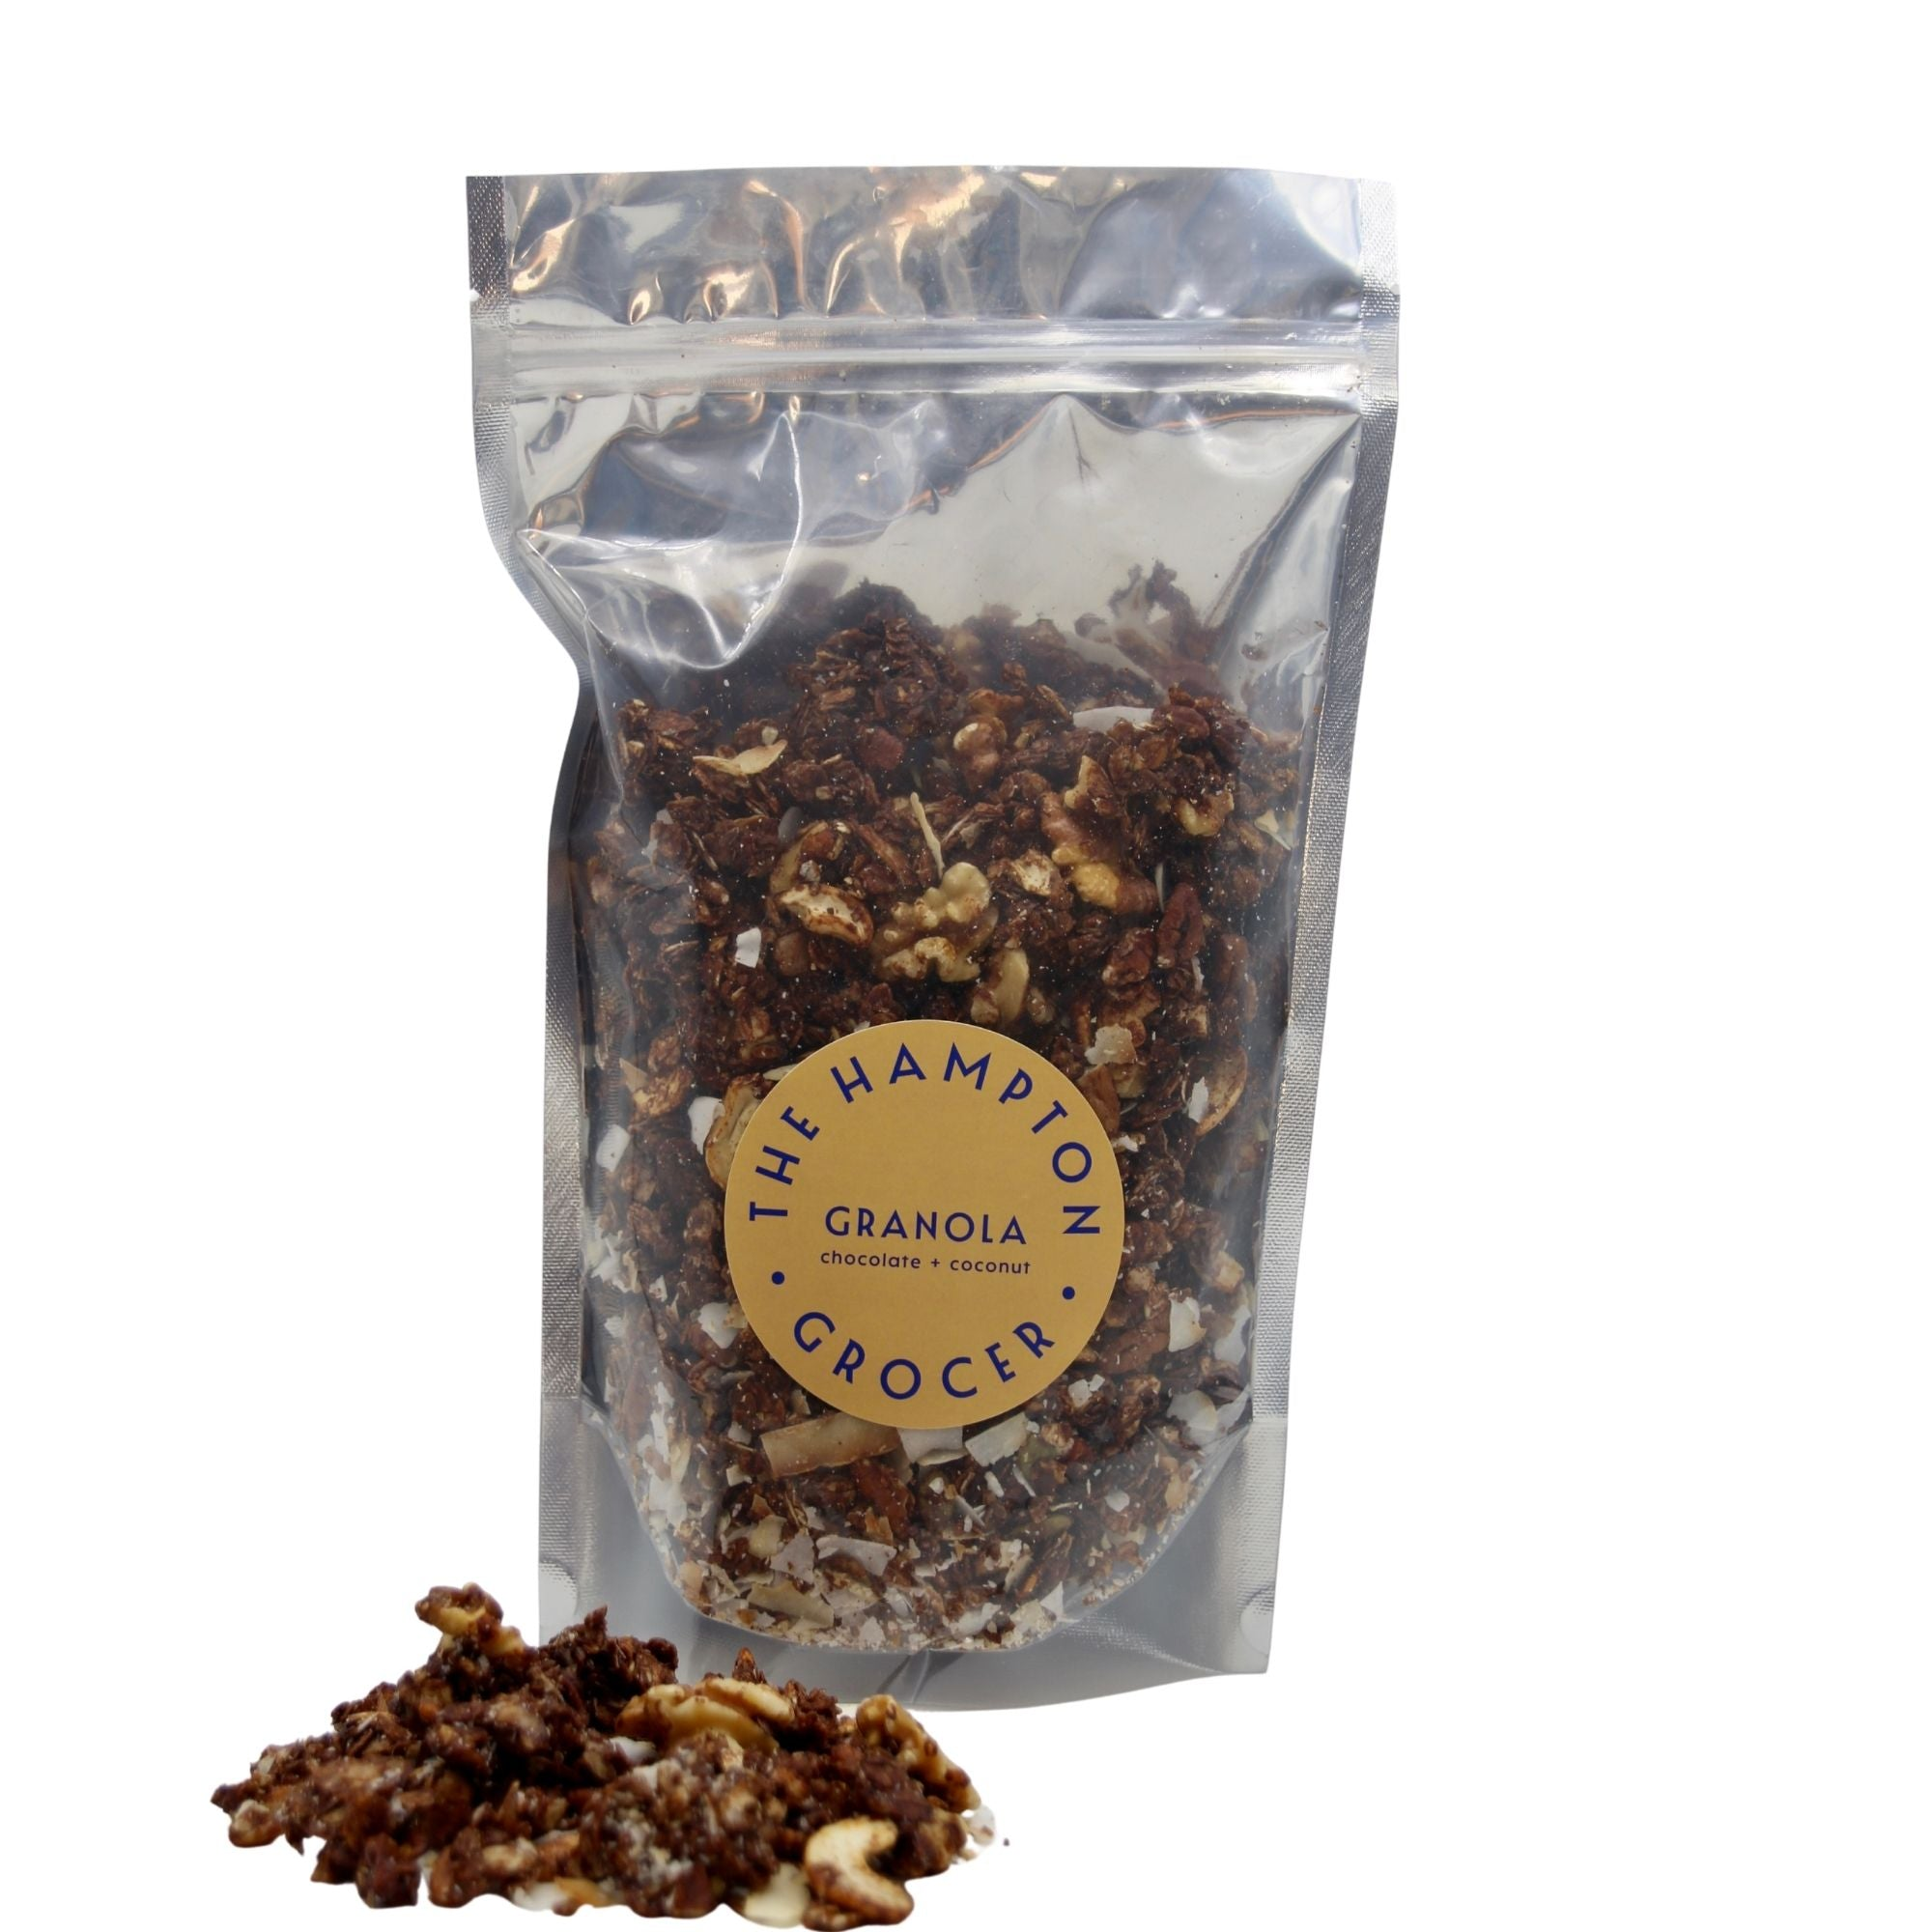 Granola - Refill Soft Pack - Chocolate + Coconut